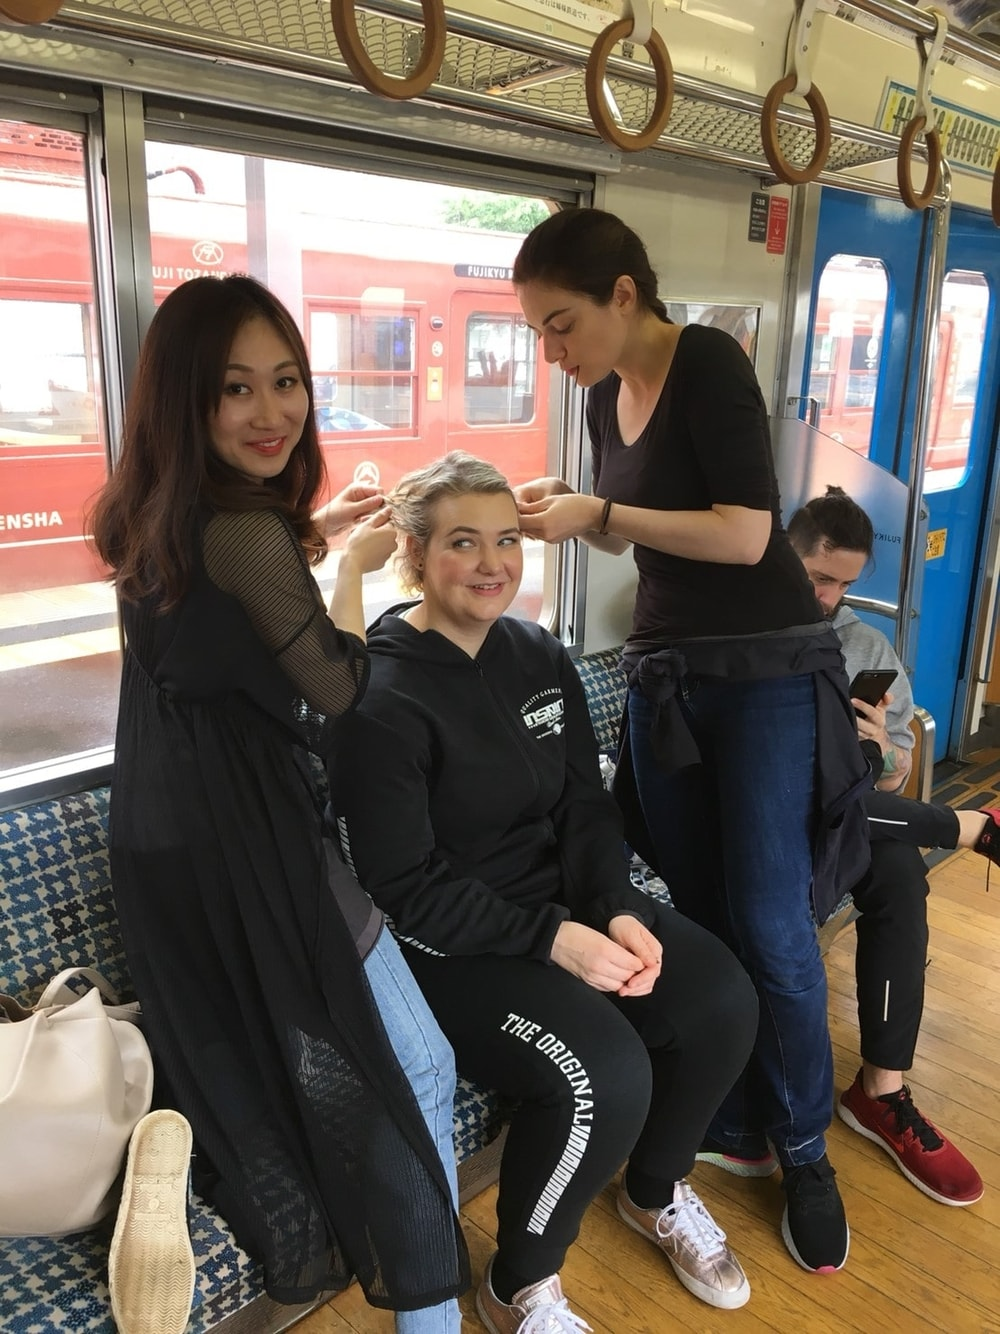 Hairdressers and a Customer